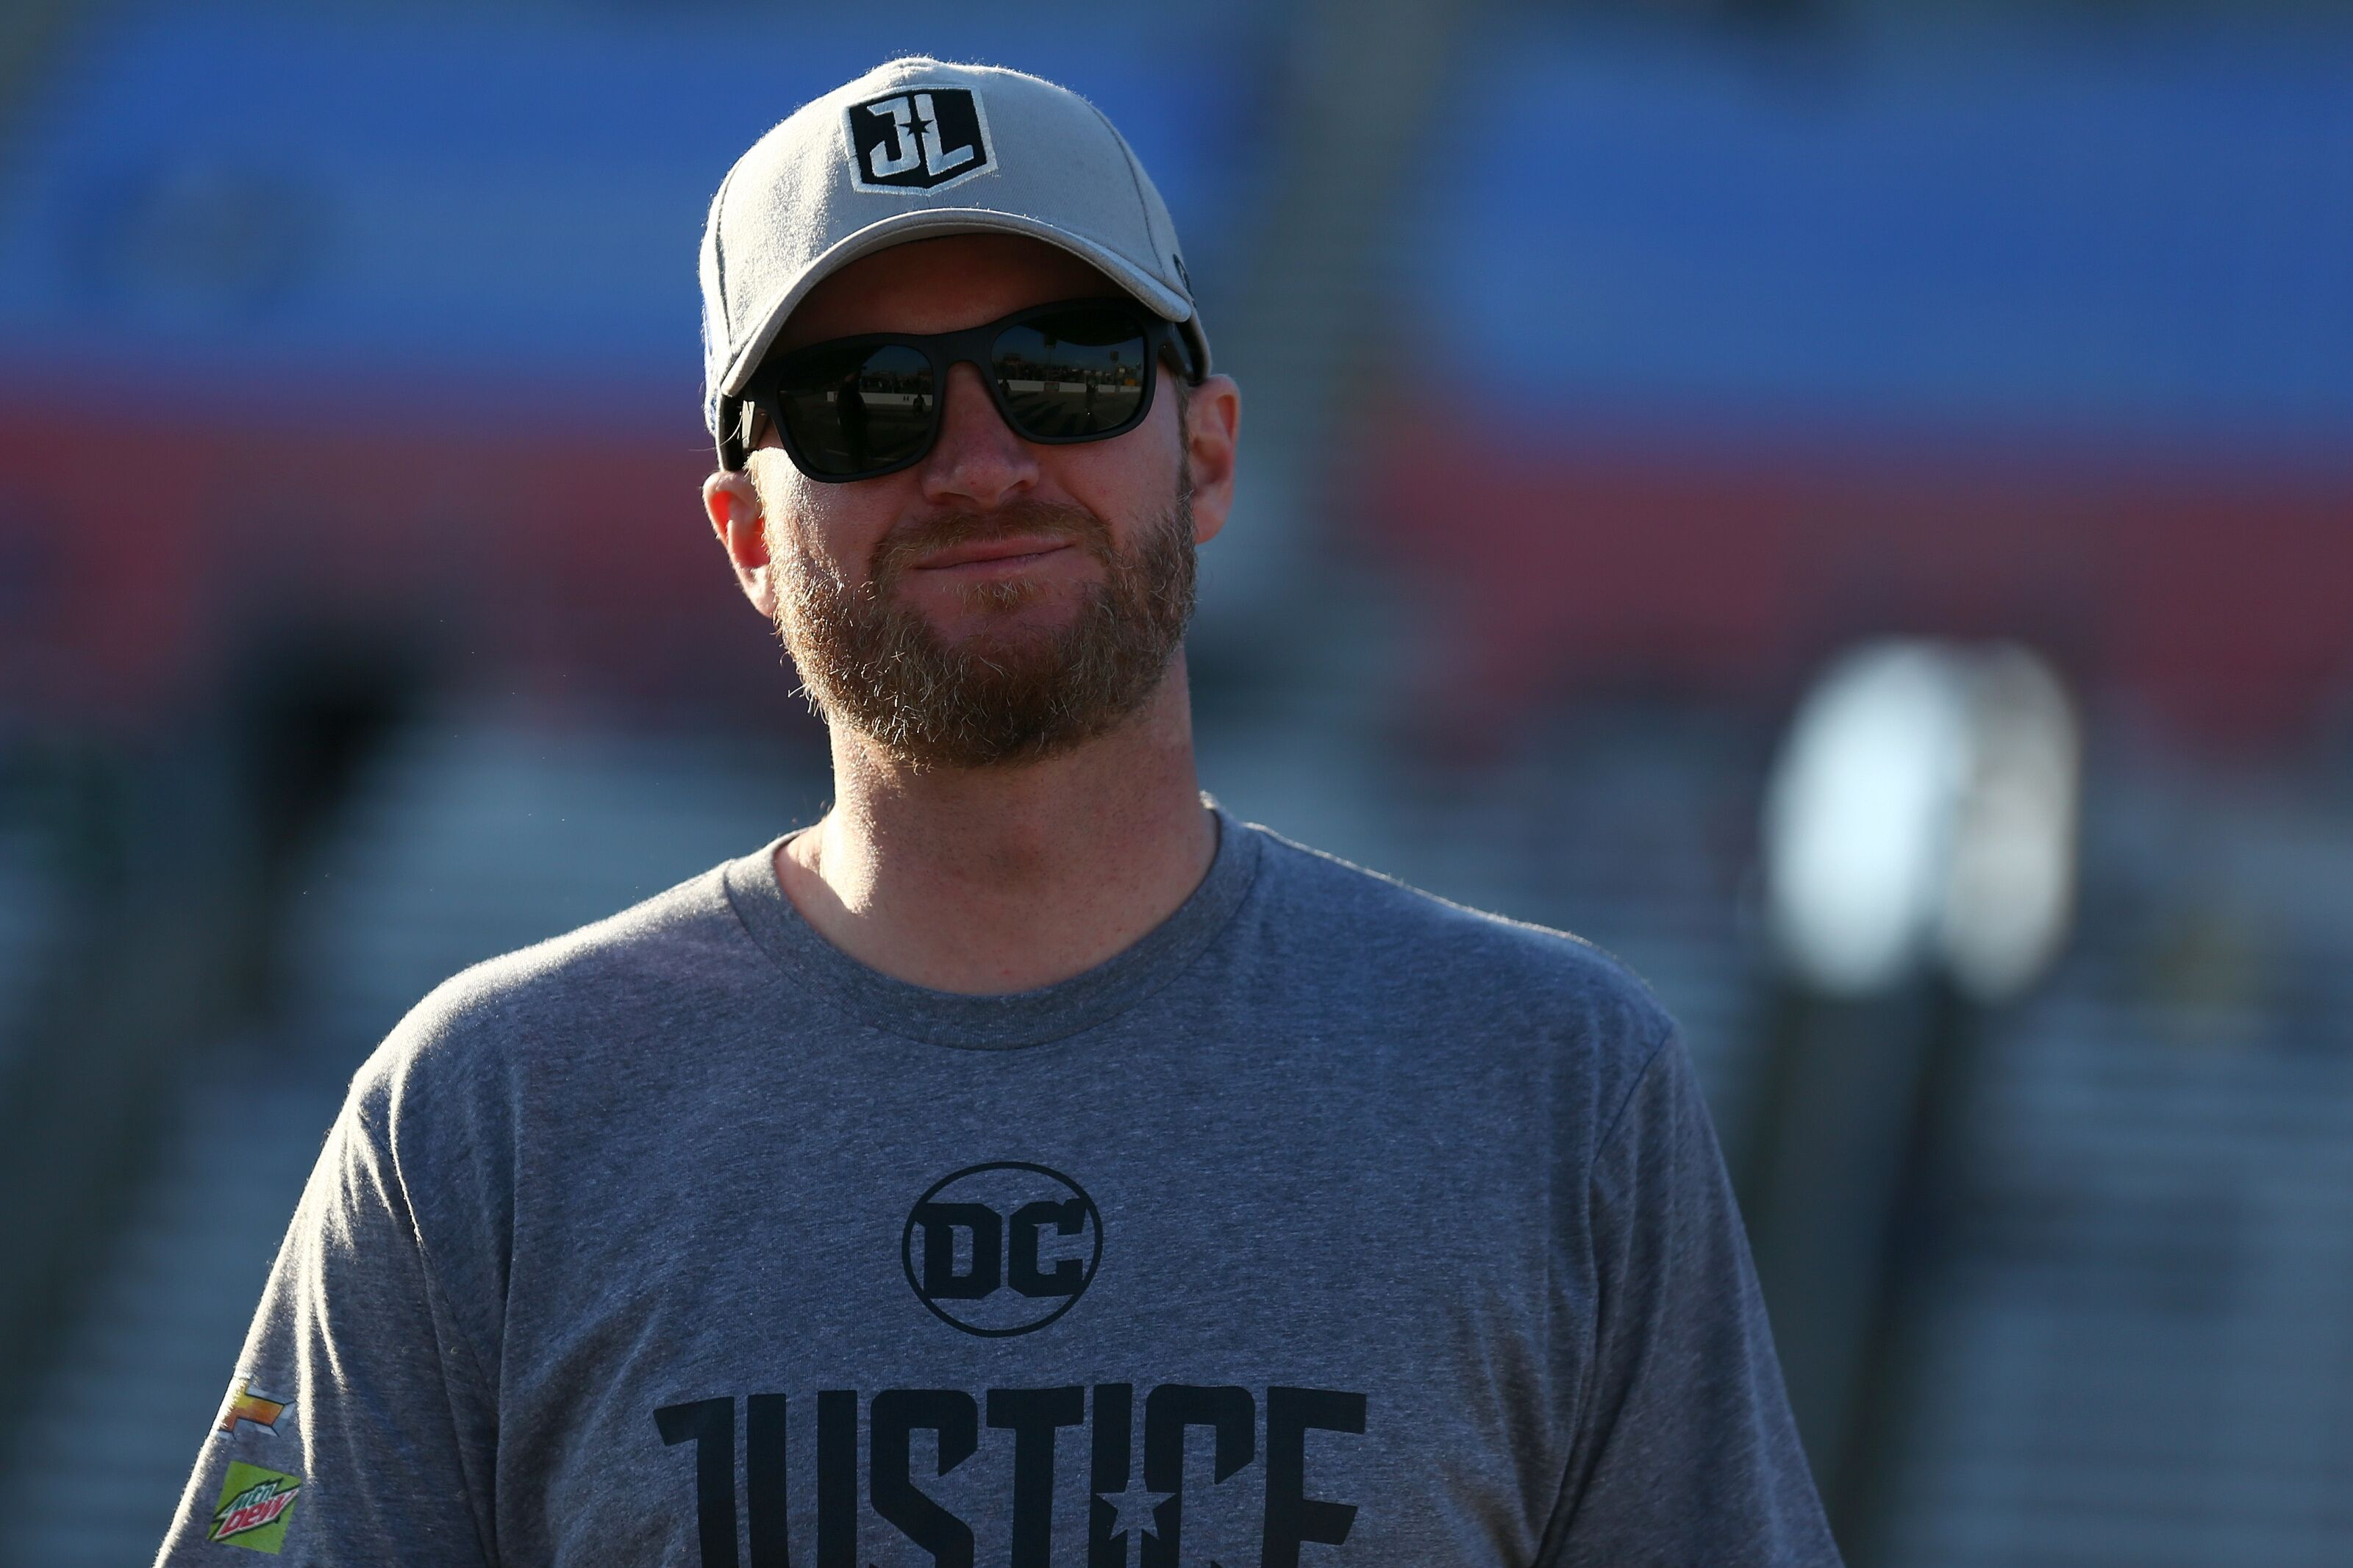 IndyCar: Dale Earnhardt Jr. to drive pace car for 2019 Indianapolis 500